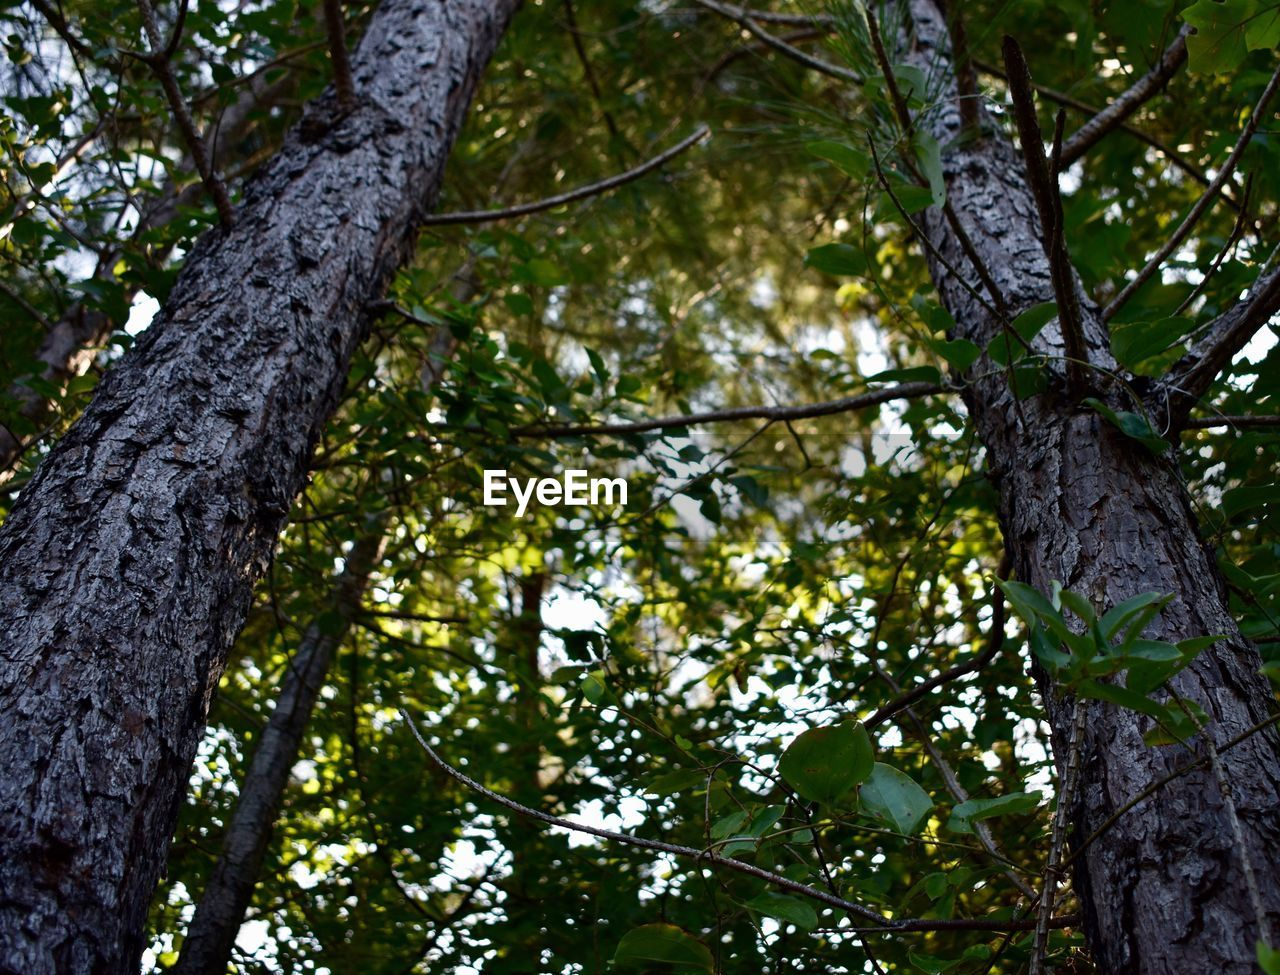 tree, tree trunk, low angle view, nature, forest, branch, outdoors, growth, day, no people, tree canopy, beauty in nature, green color, leaf, scenics, sky